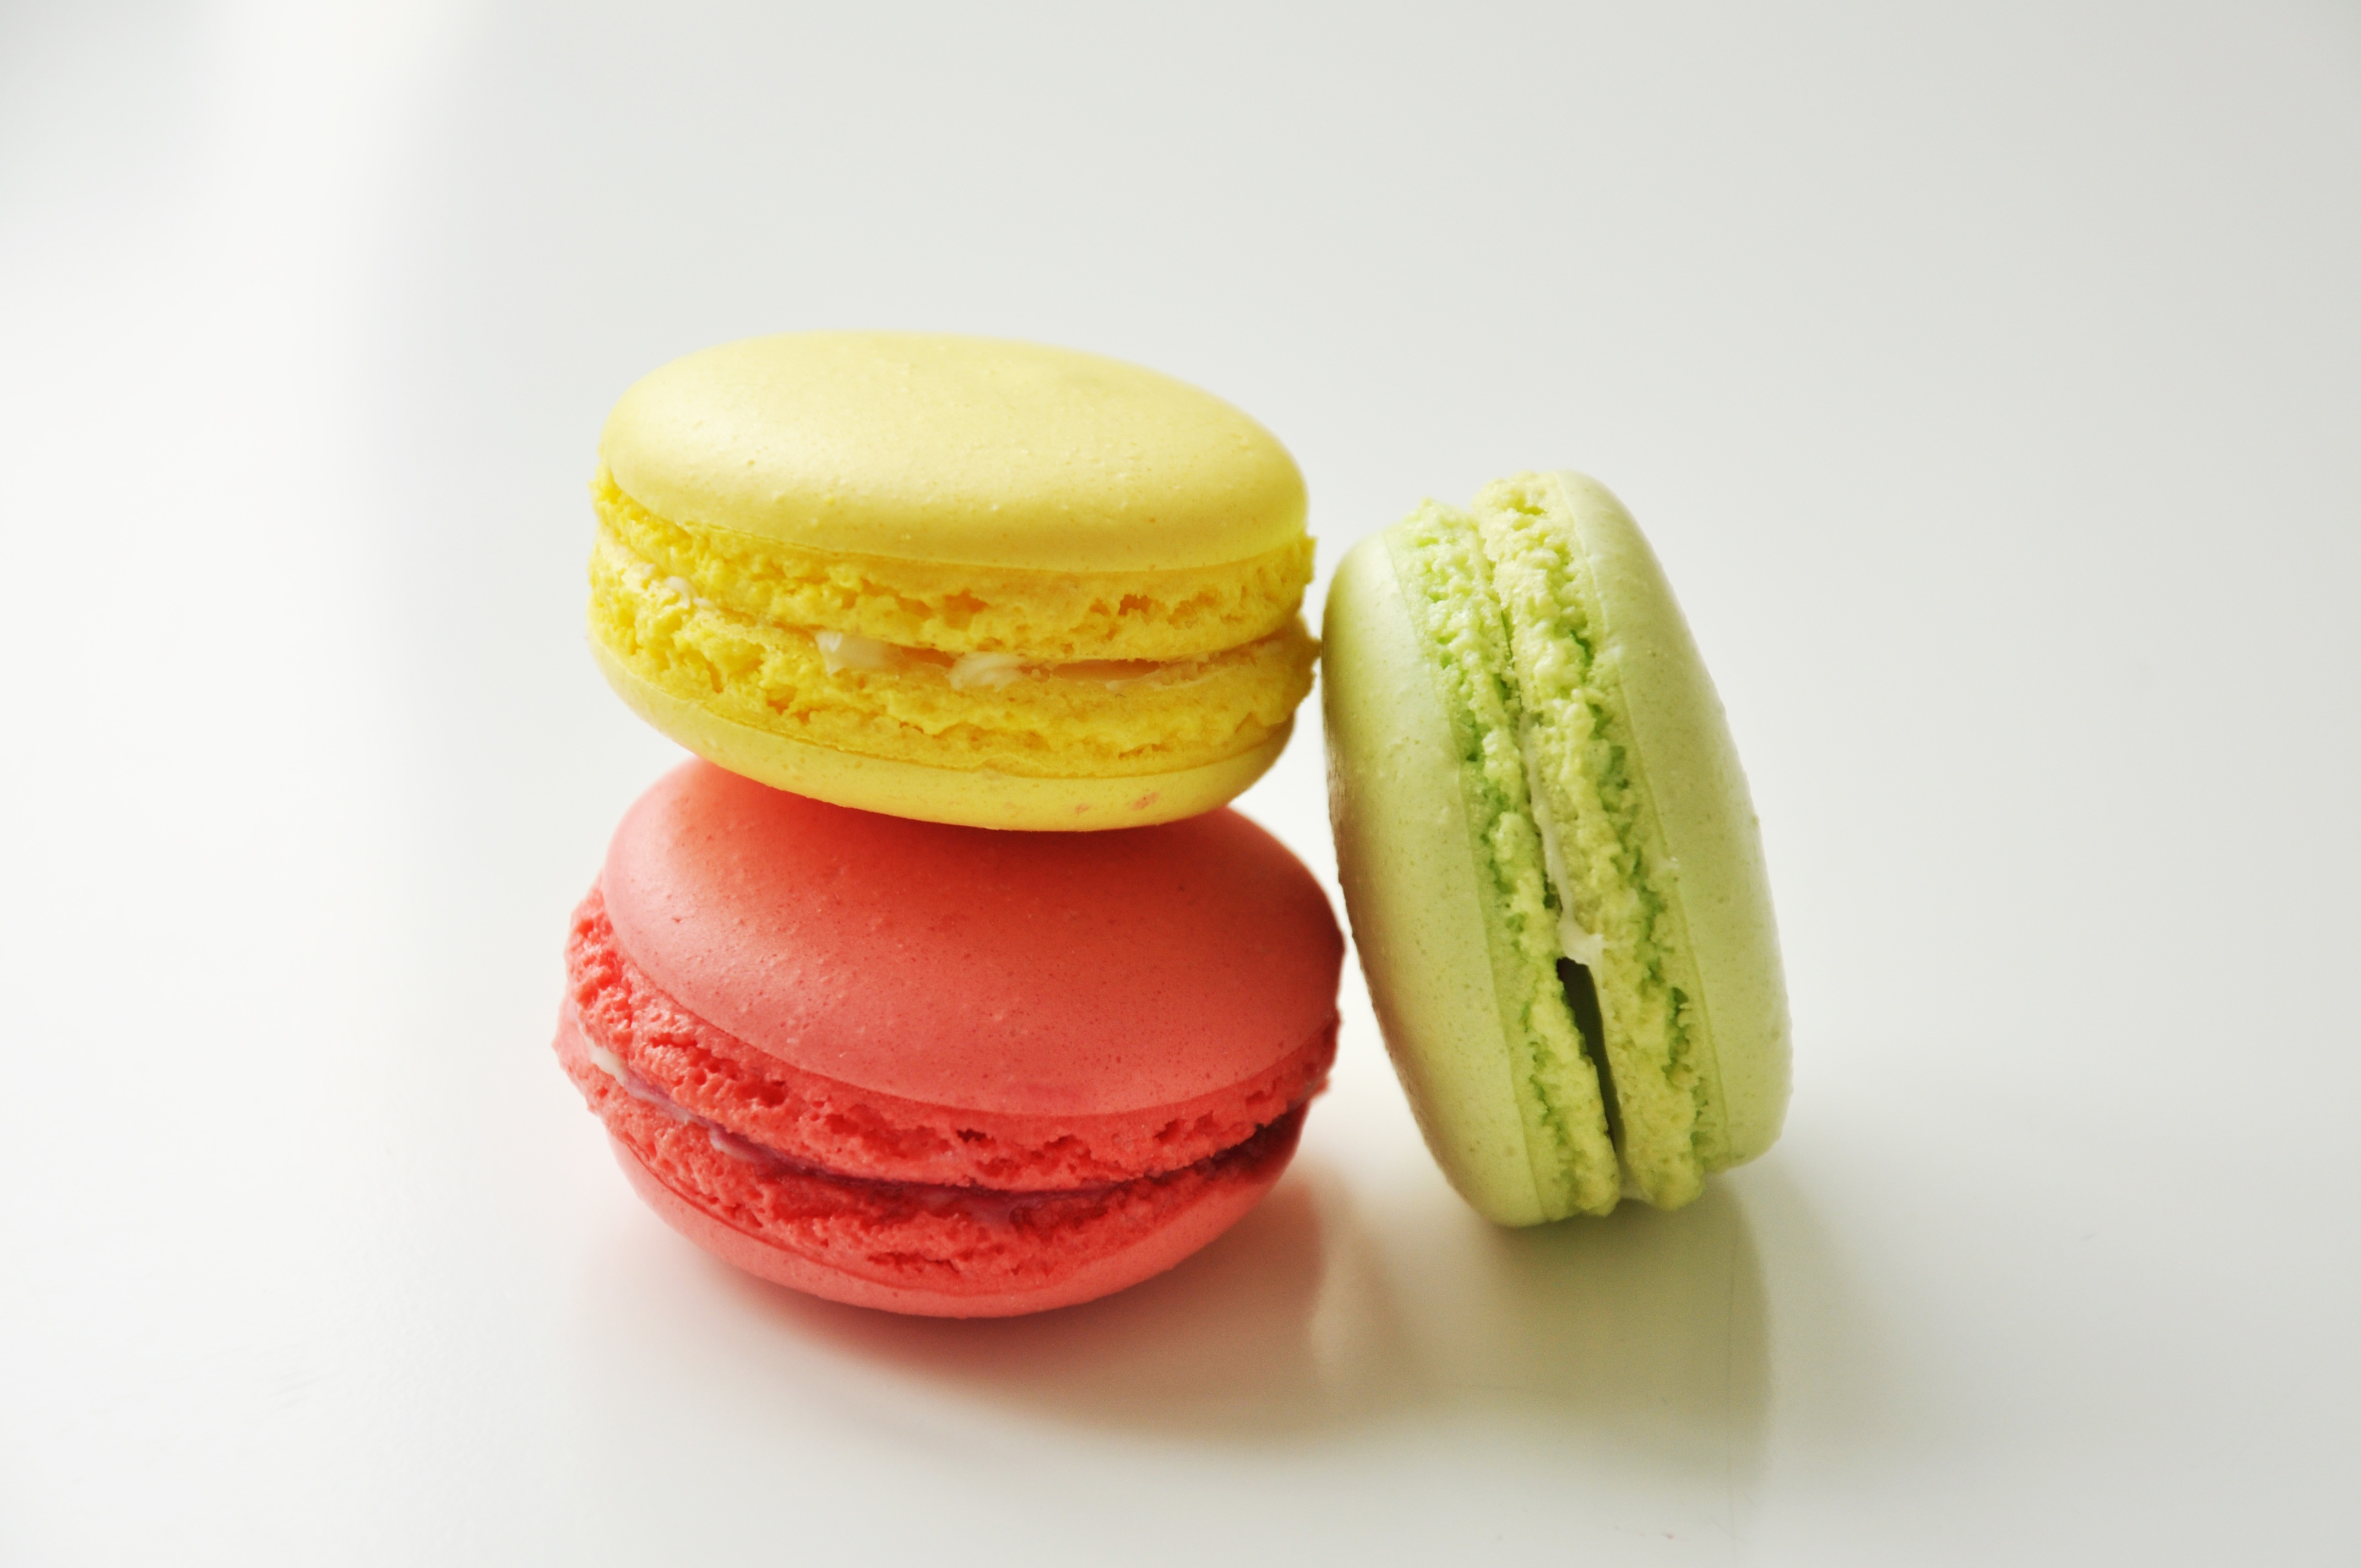 What Macarons have in common with the Gioconda